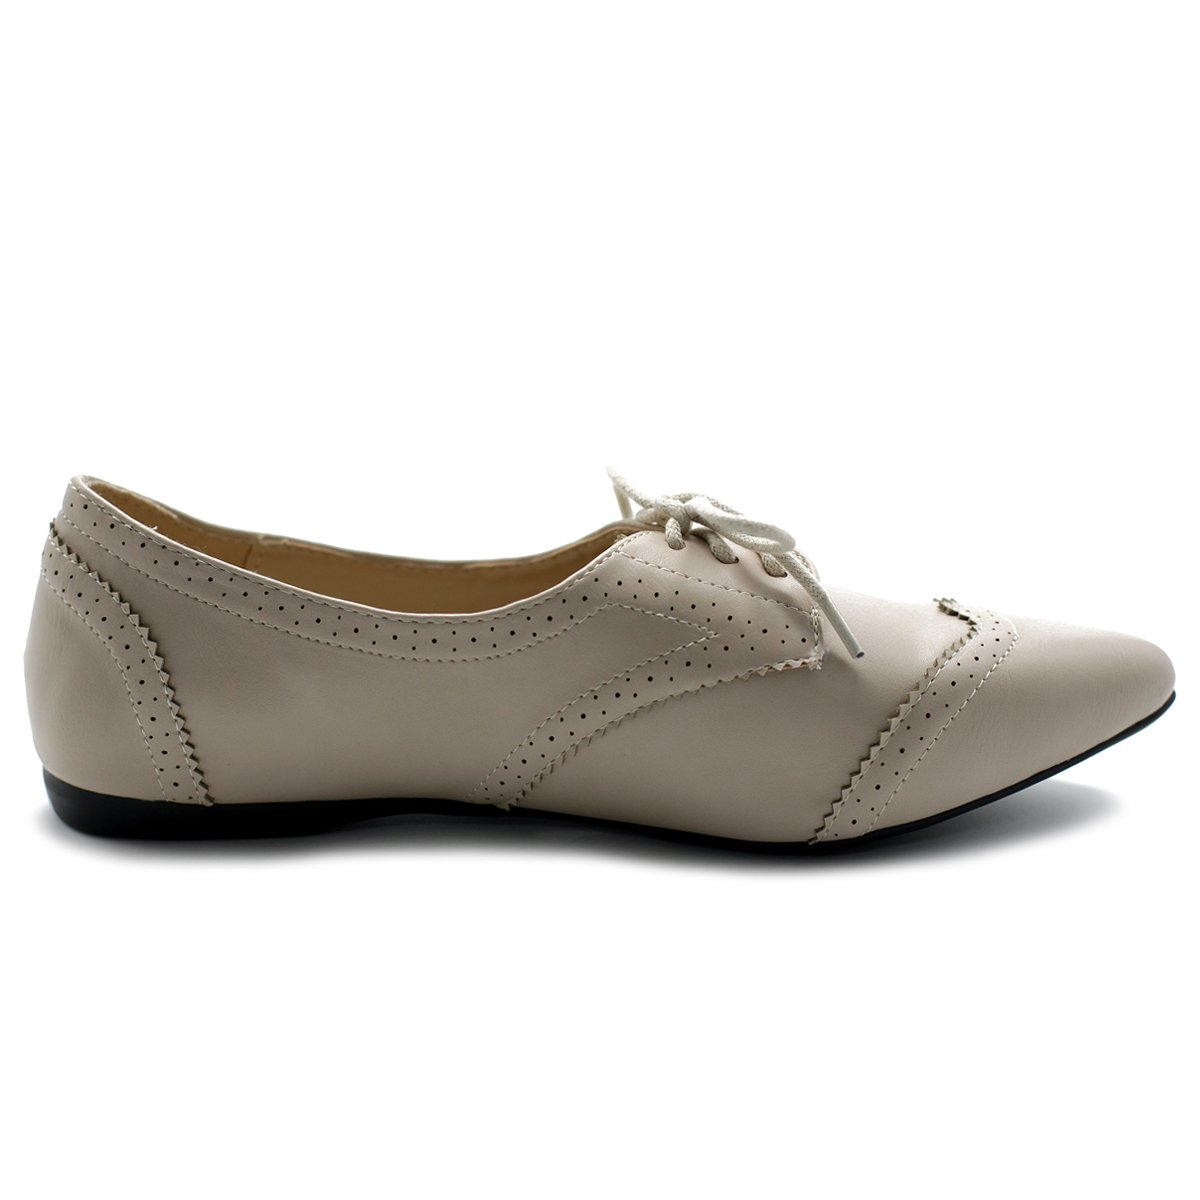 Ollio Women's Ballet Shoe Flat Enamel Pointed Toe Oxford M1818 (9 B(M) US, Beige) by Ollio (Image #5)